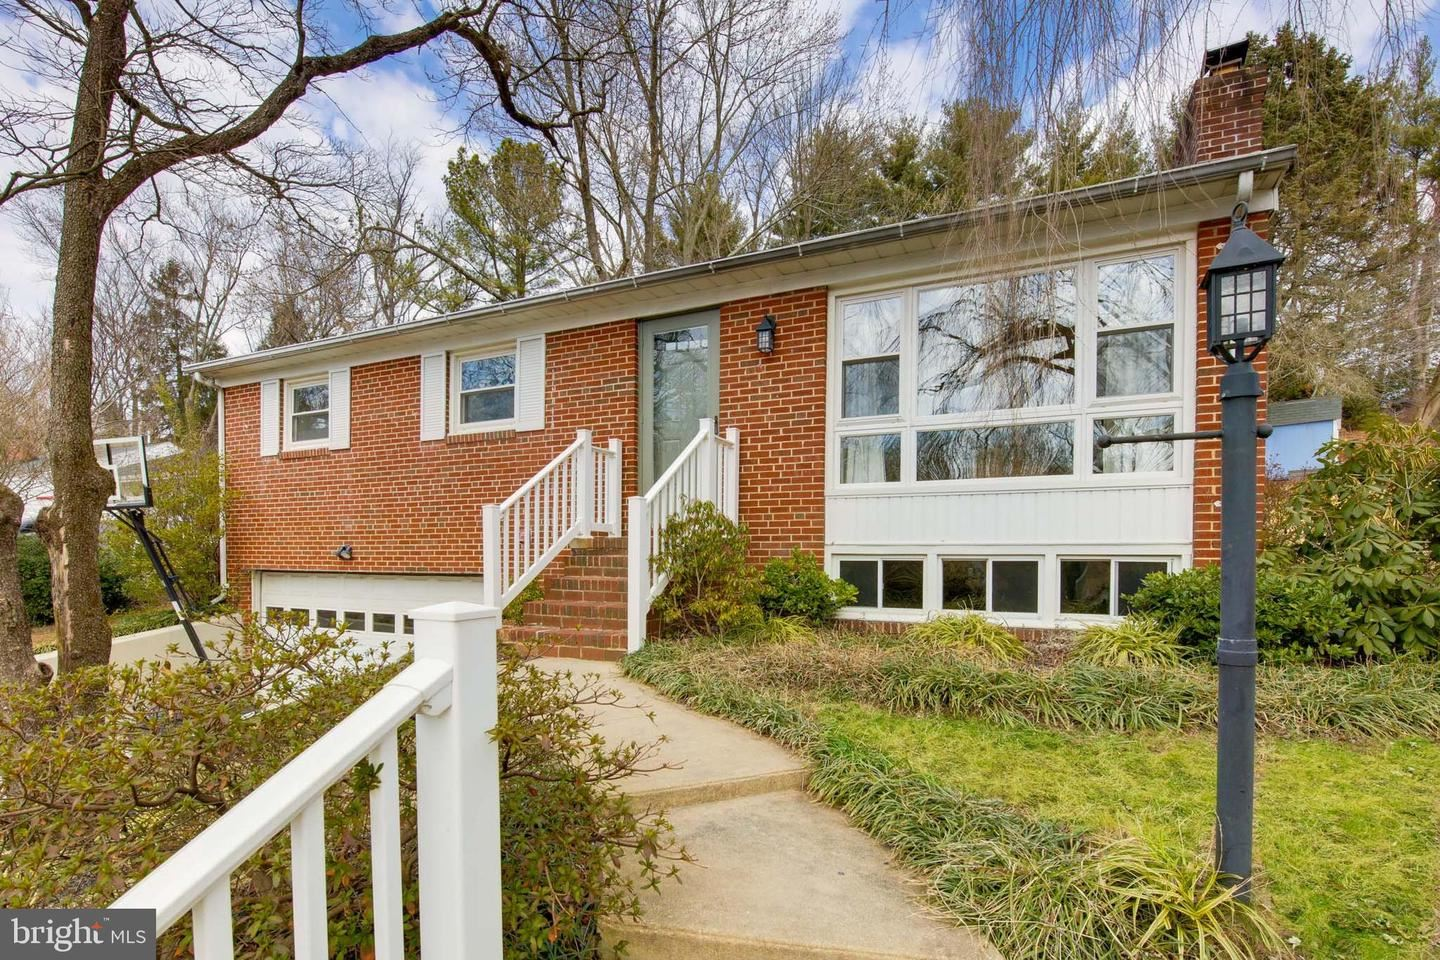 6719 GLENKIRK RD, Baltimore, MD 21239 - MLS#: MDBC522066